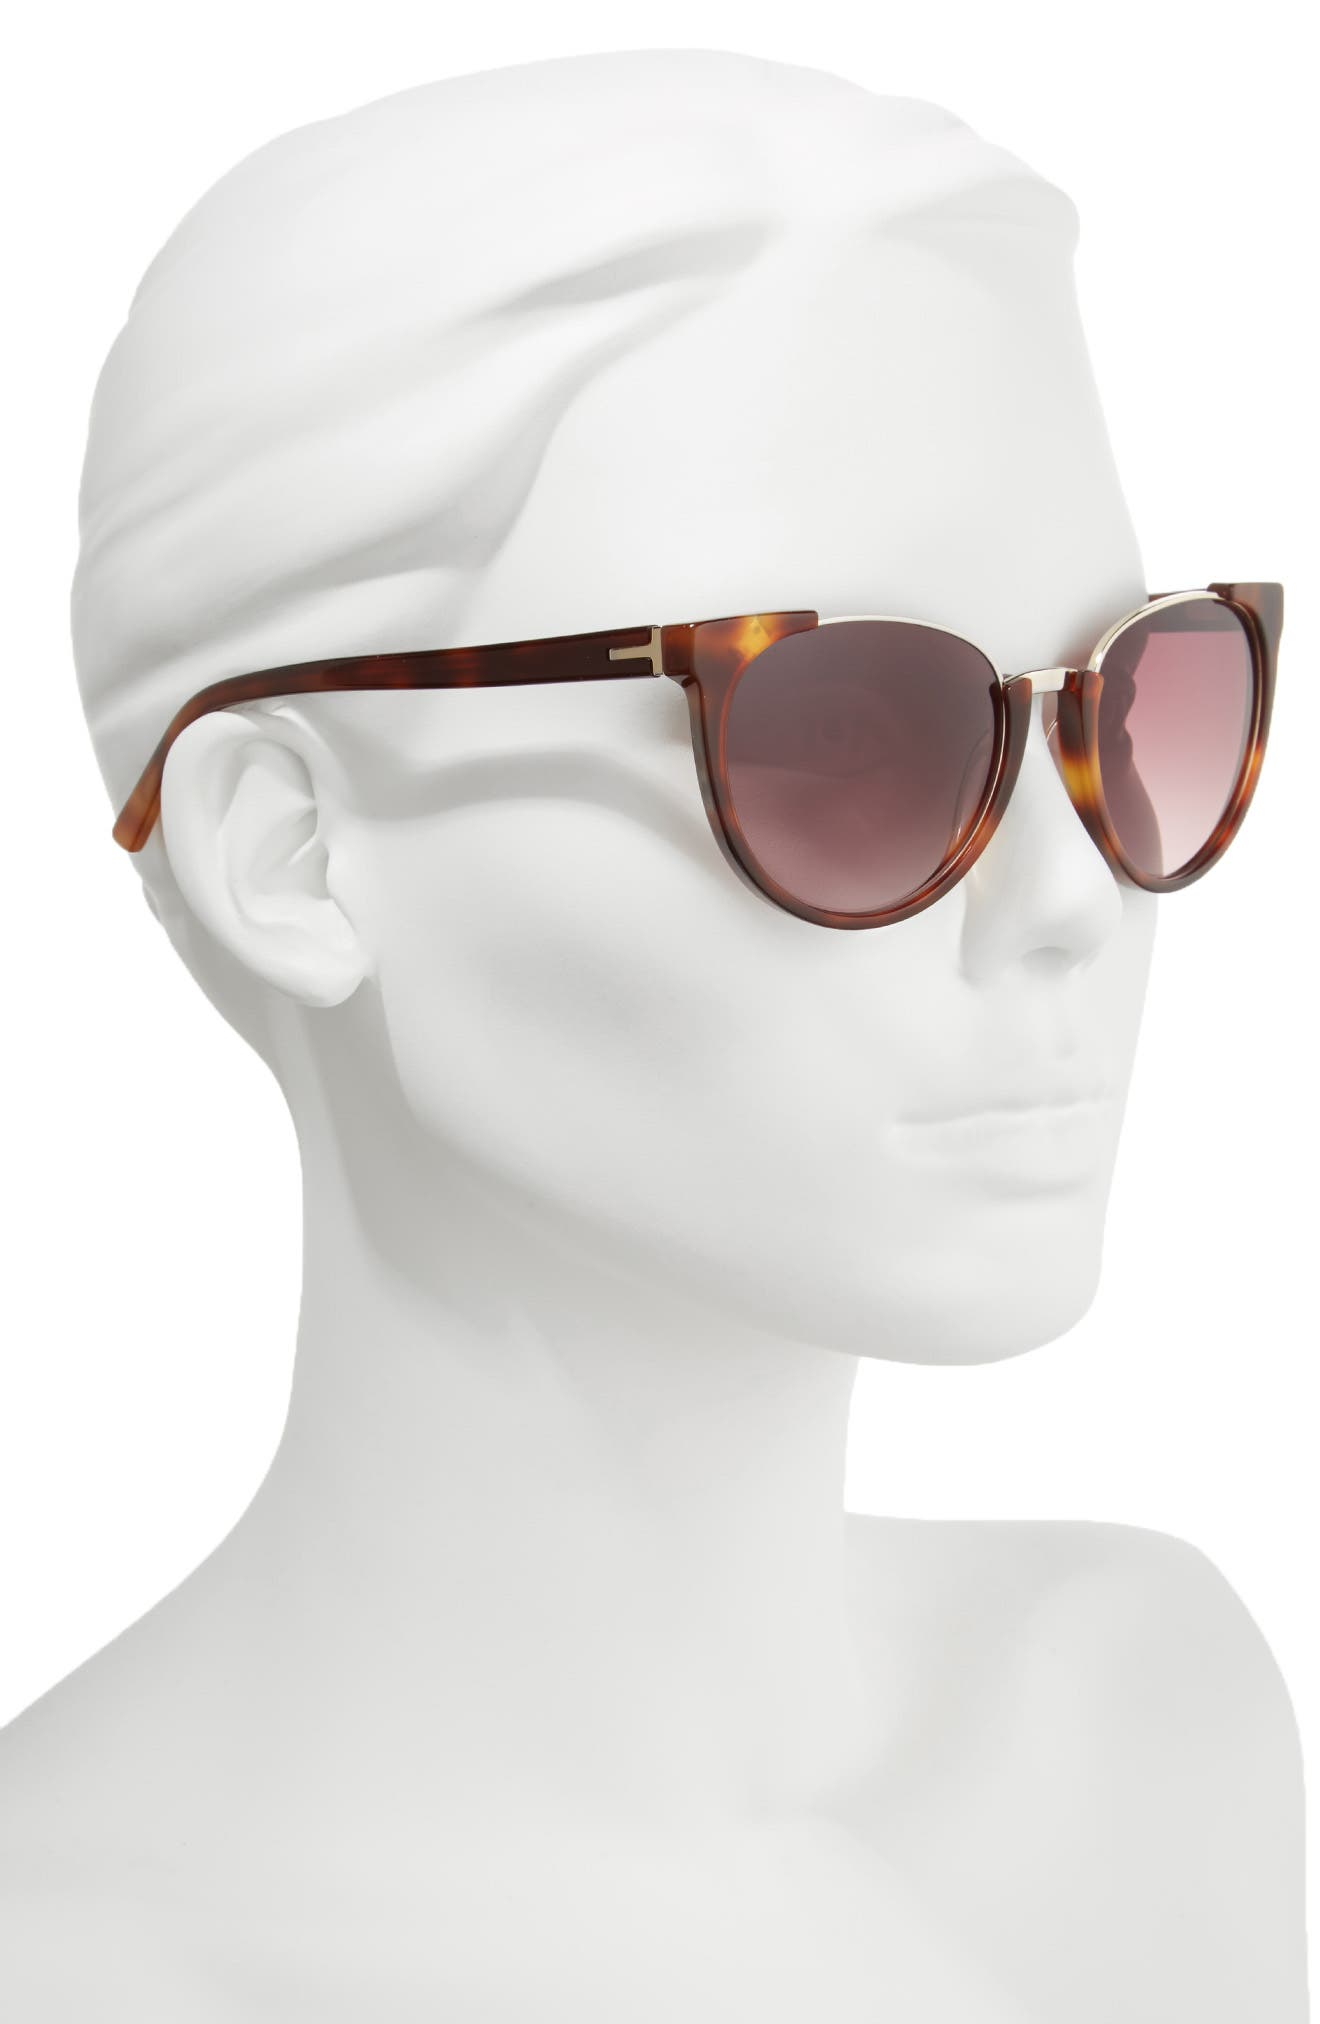 53mm Modified Oval Sunglasses,                             Alternate thumbnail 2, color,                             200